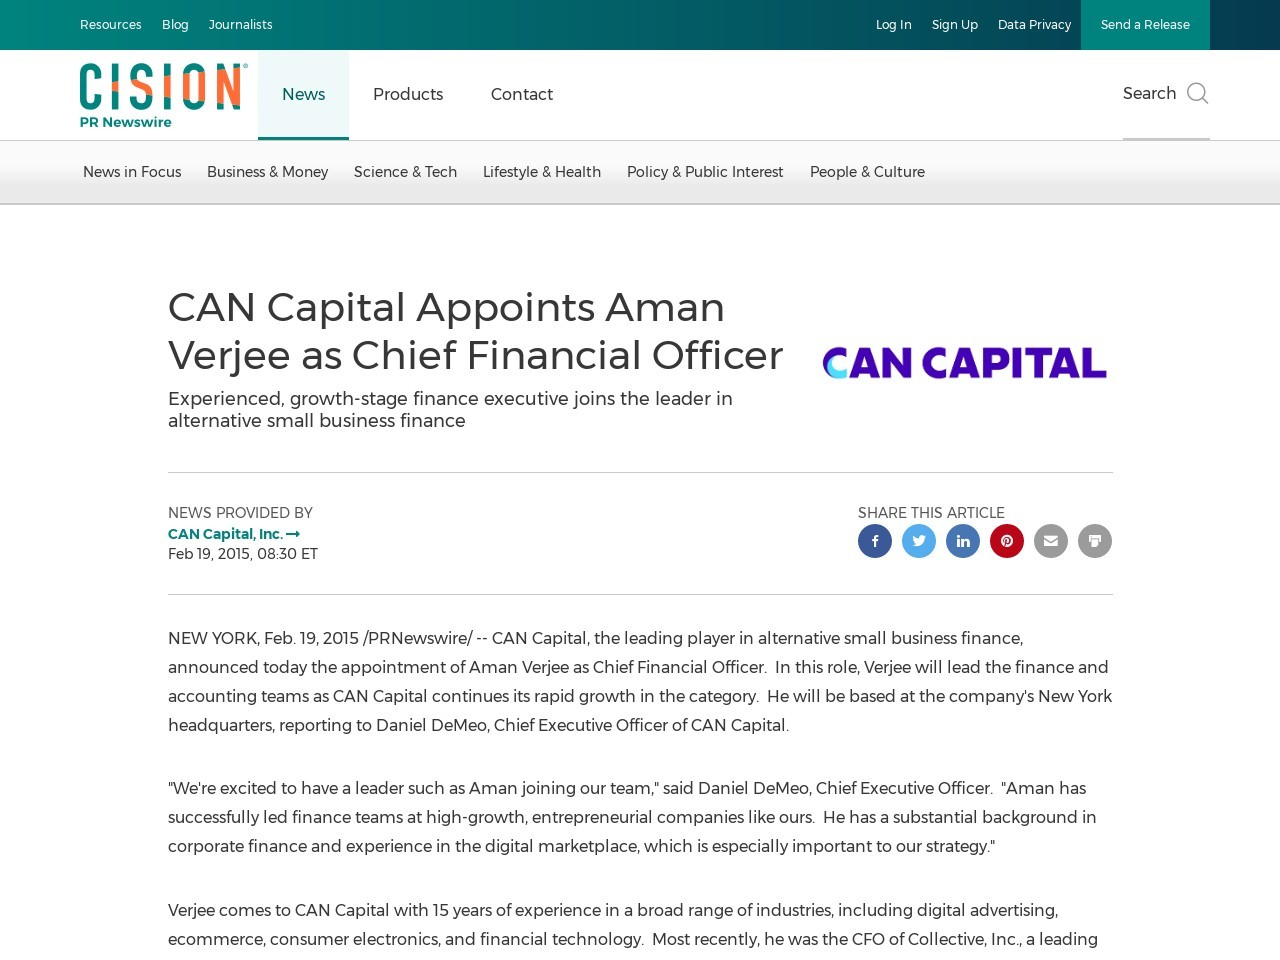 CAN Capital Appoints Aman Verjee as Chief Financial Officer